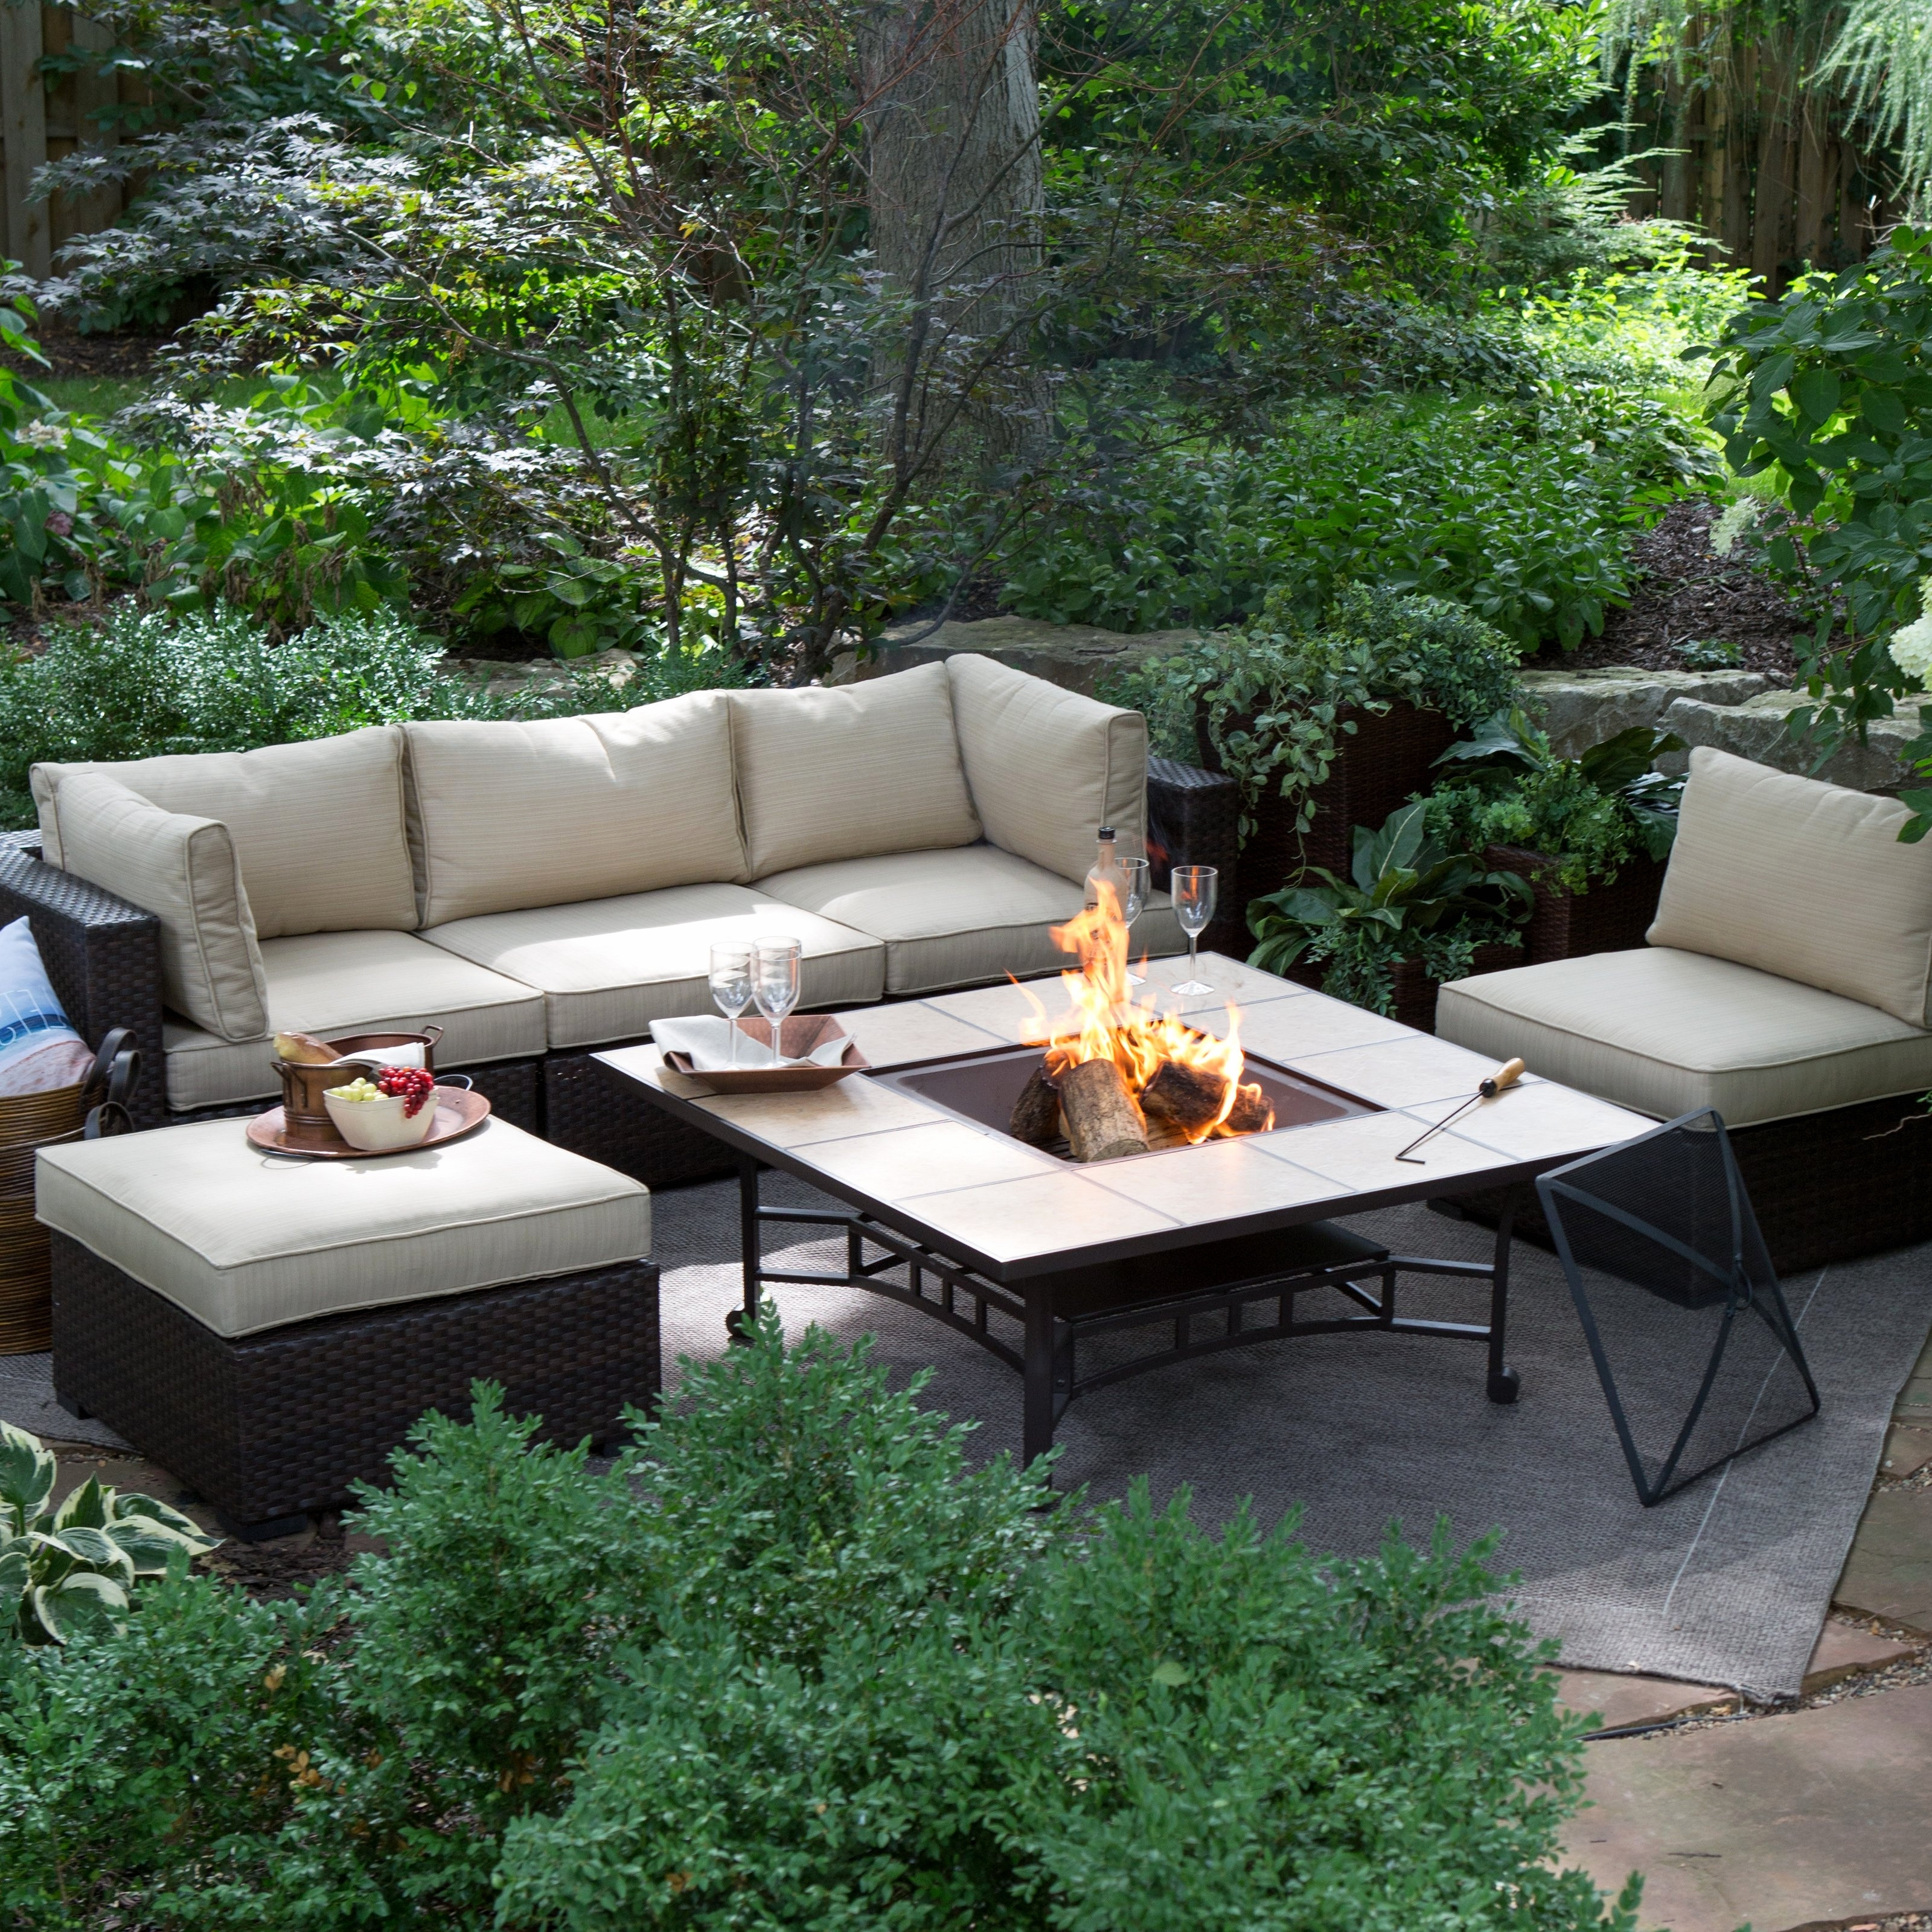 Patio Furniture Conversation Sets With Fire Pit In Most Current Patio Table With Gas Fire Pit Lovely Conversation Sets Fire Pit (View 17 of 20)